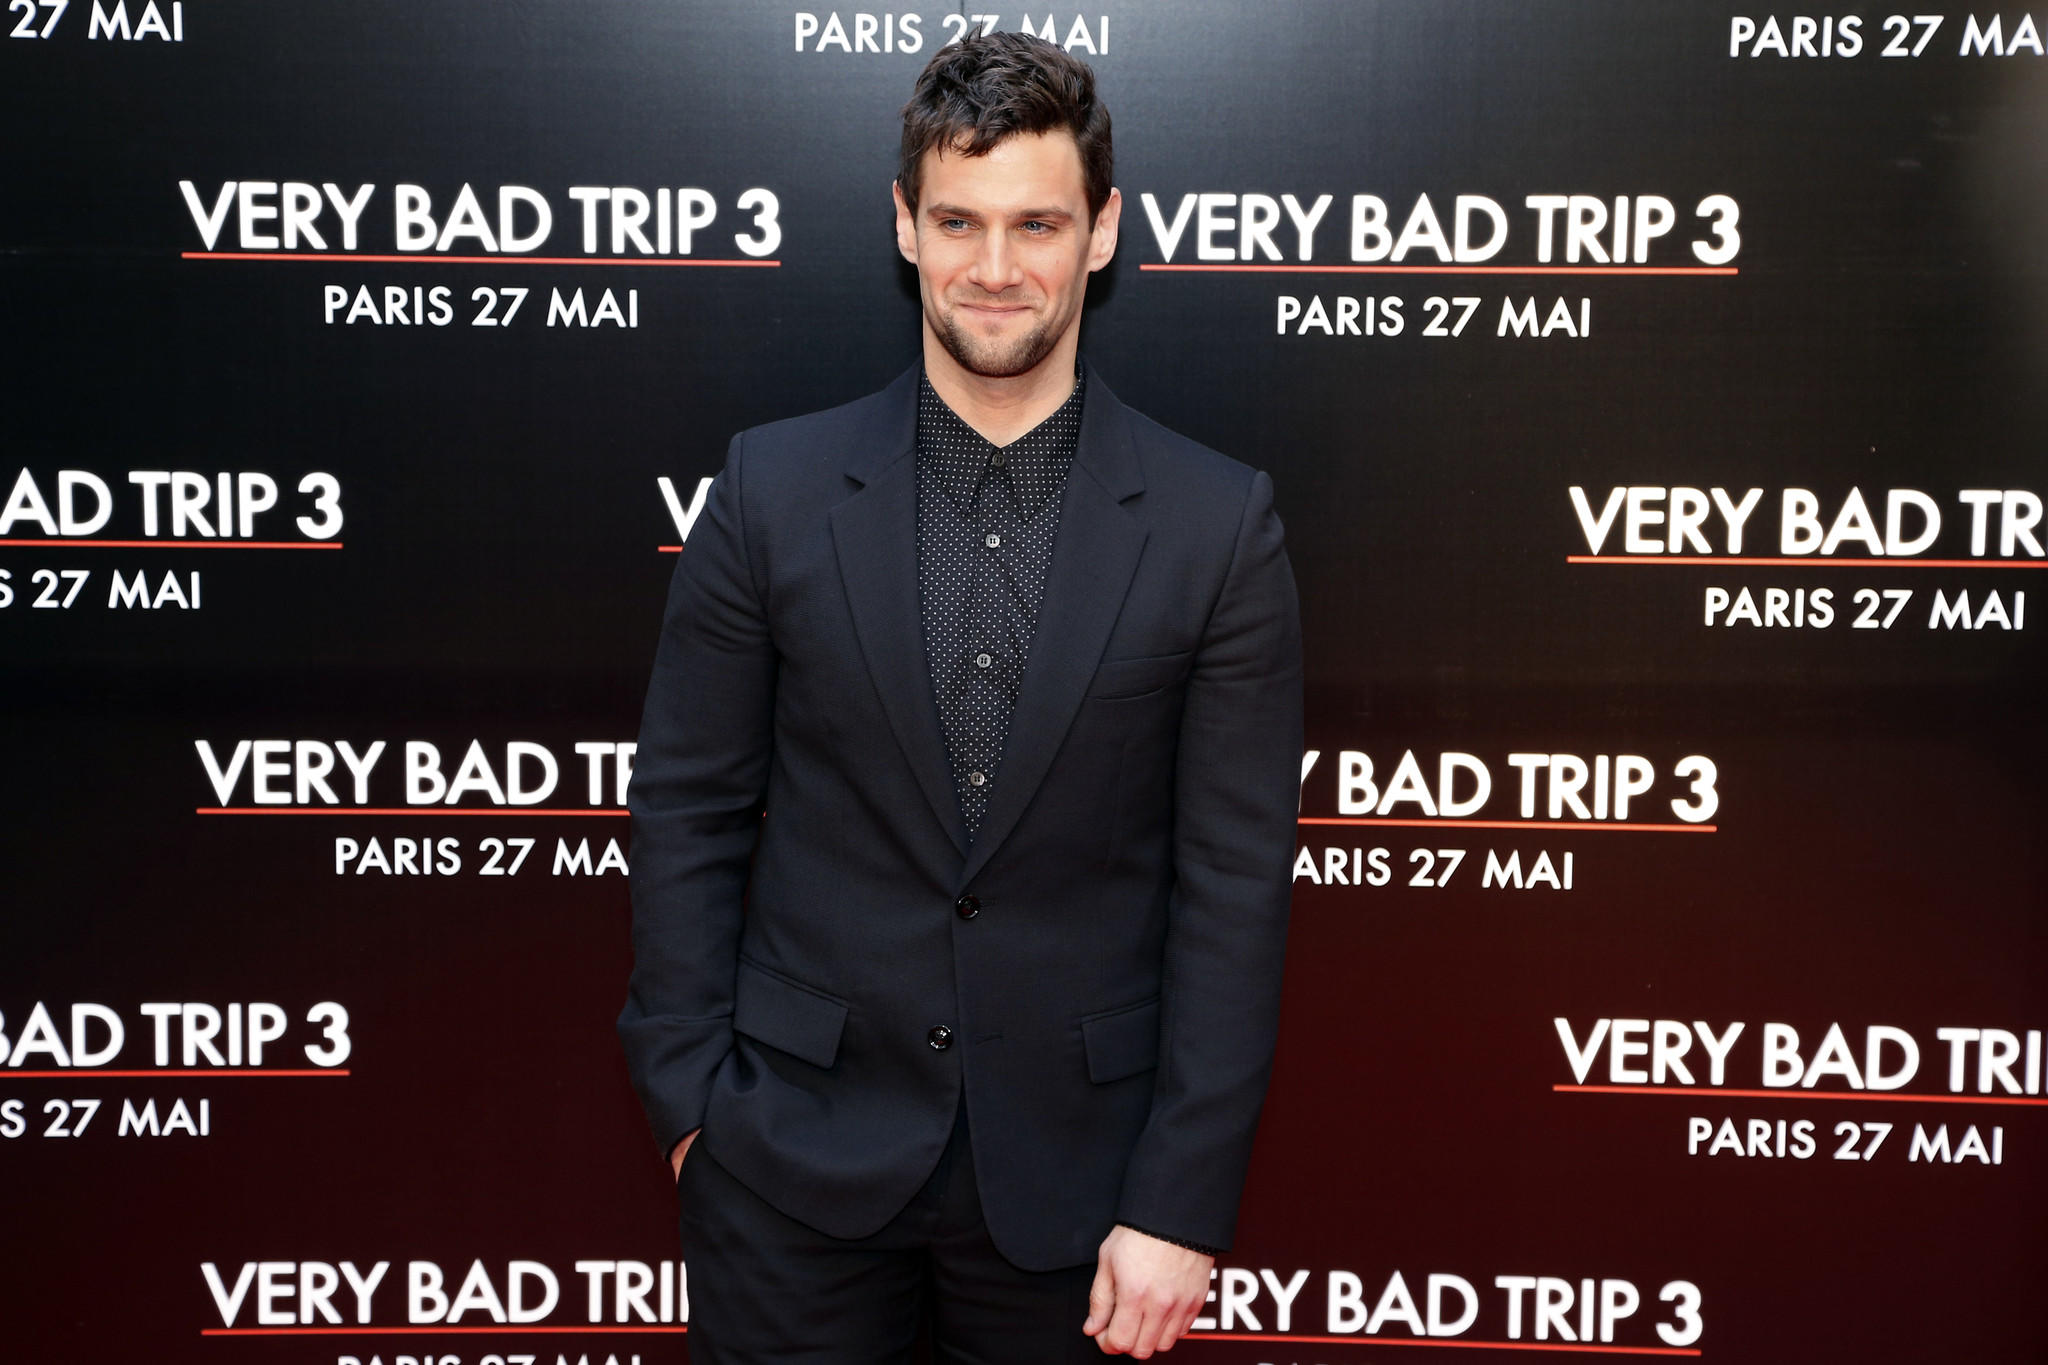 """The Hangover"" star Justin Bartha has reportedly welcomed a baby girl with his wife, Lia Smith, whom he married in January."